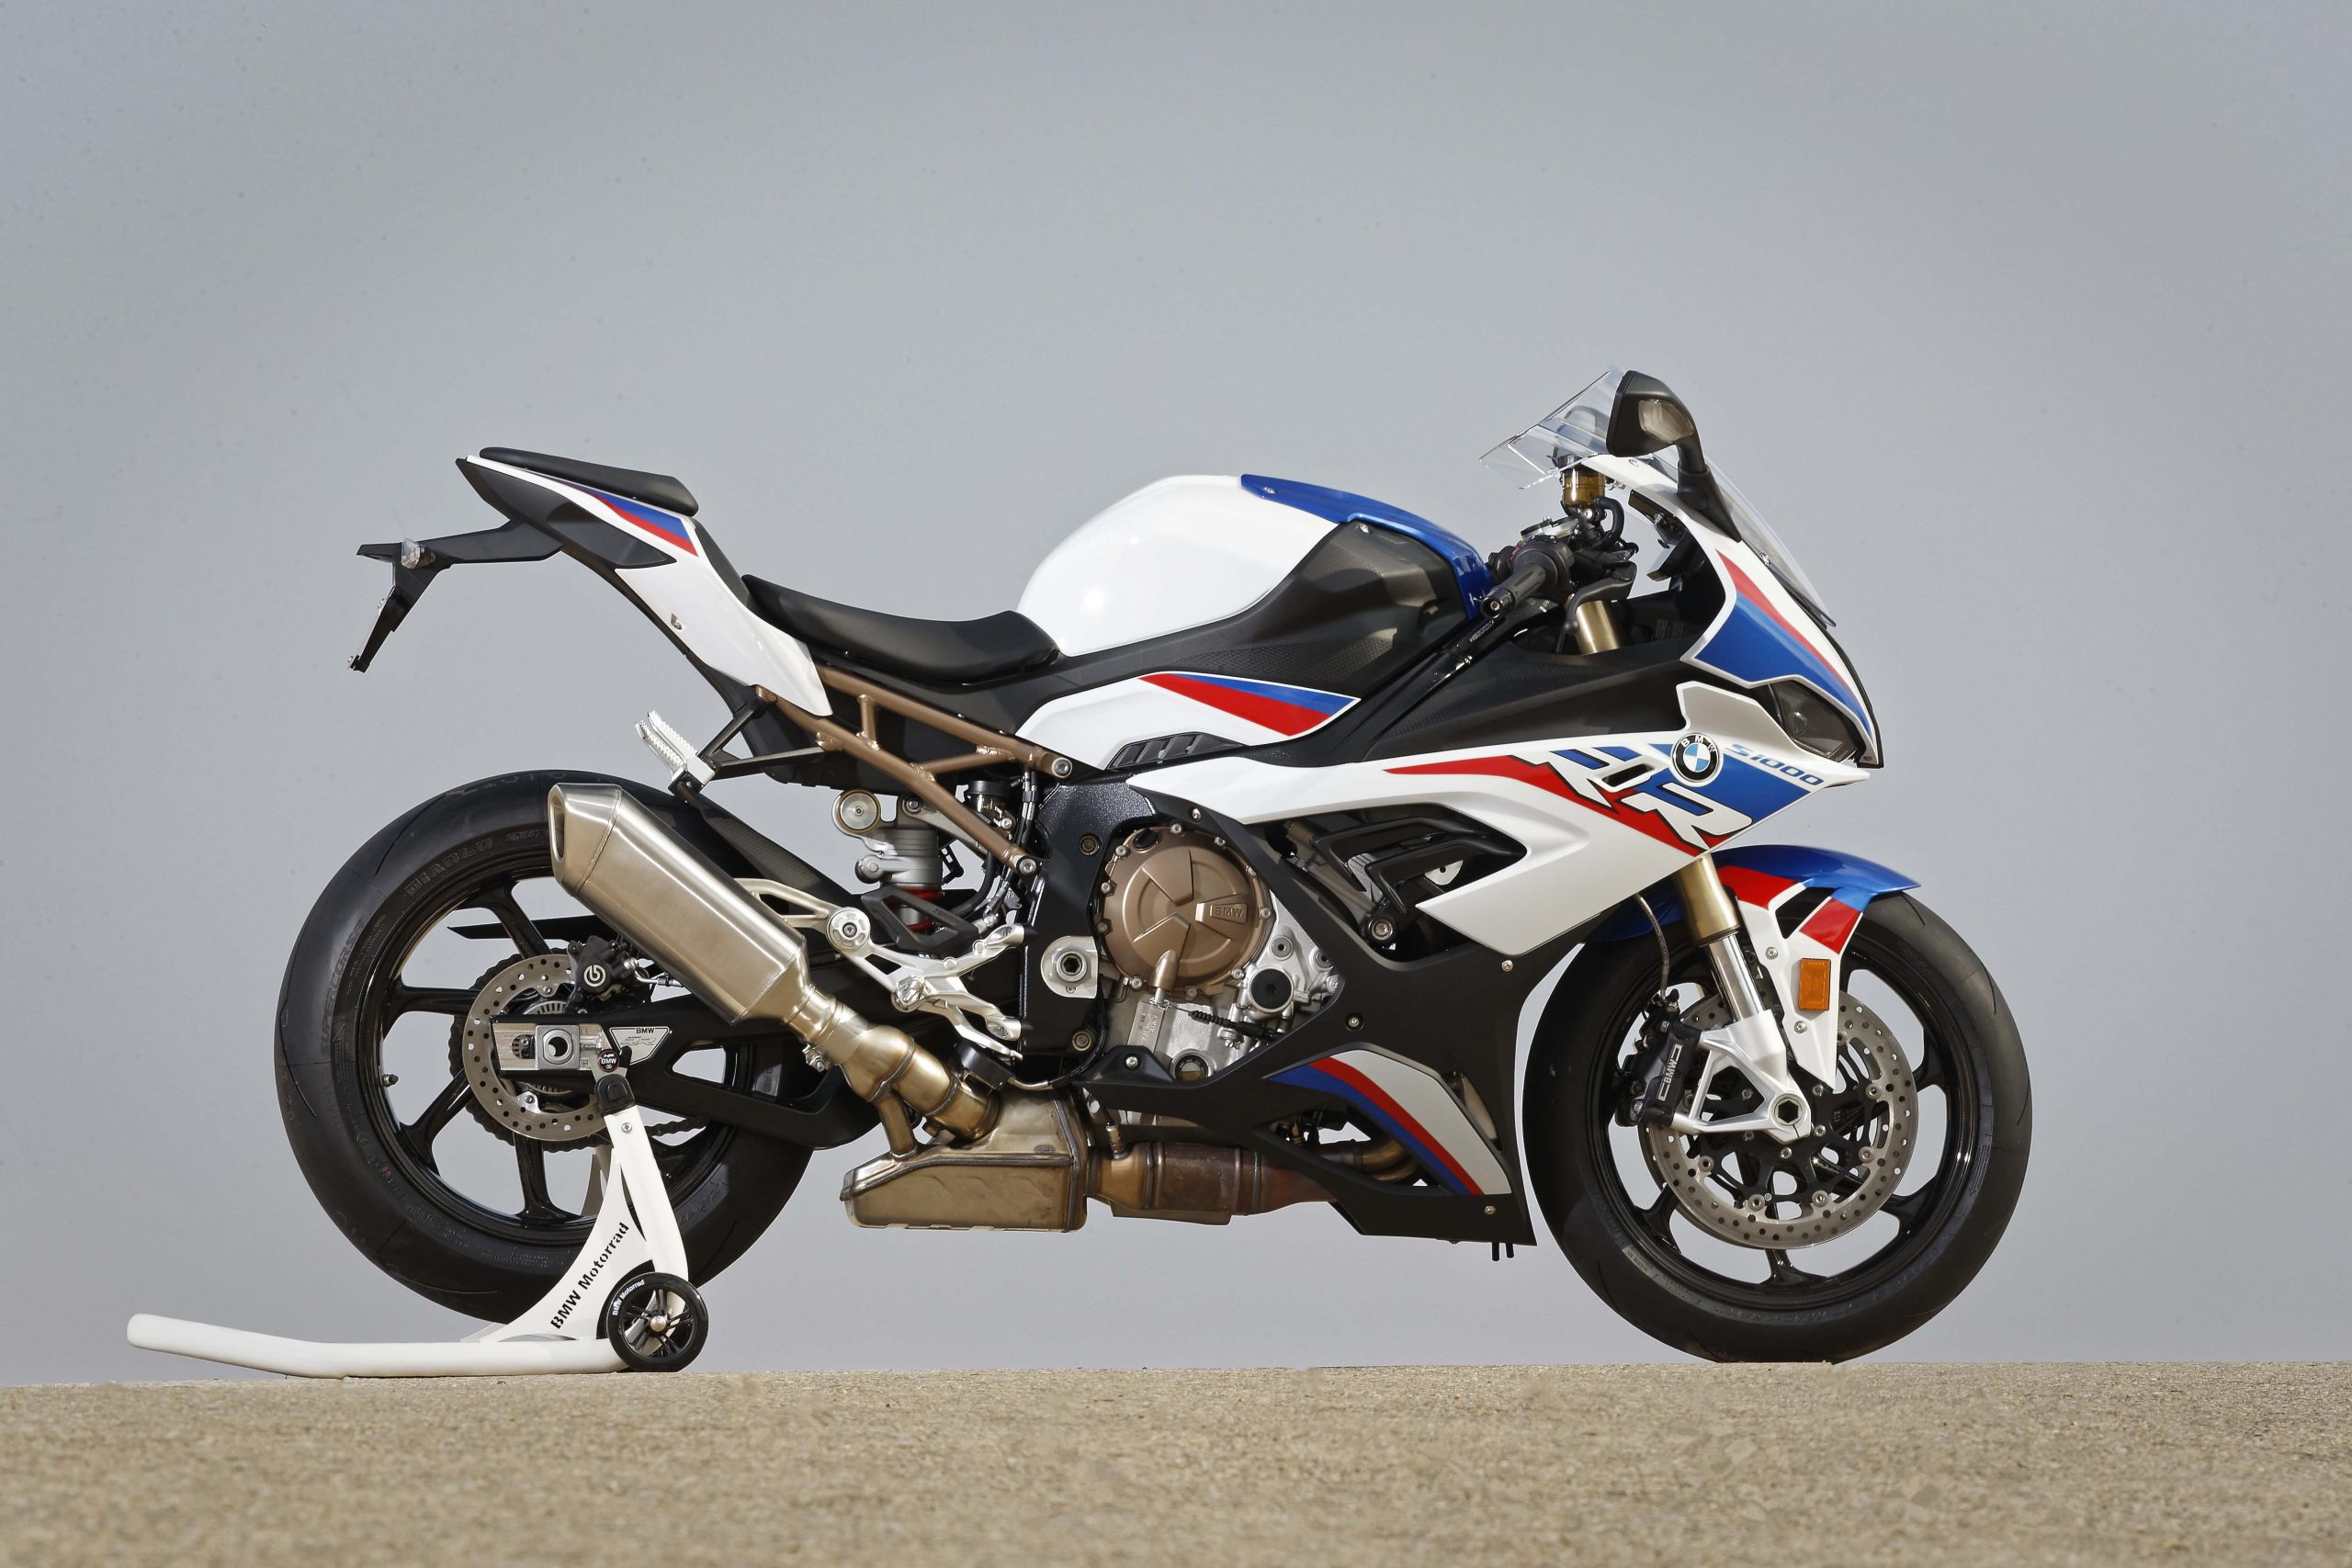 2020 BMW S1000Rr Redesign and Concept